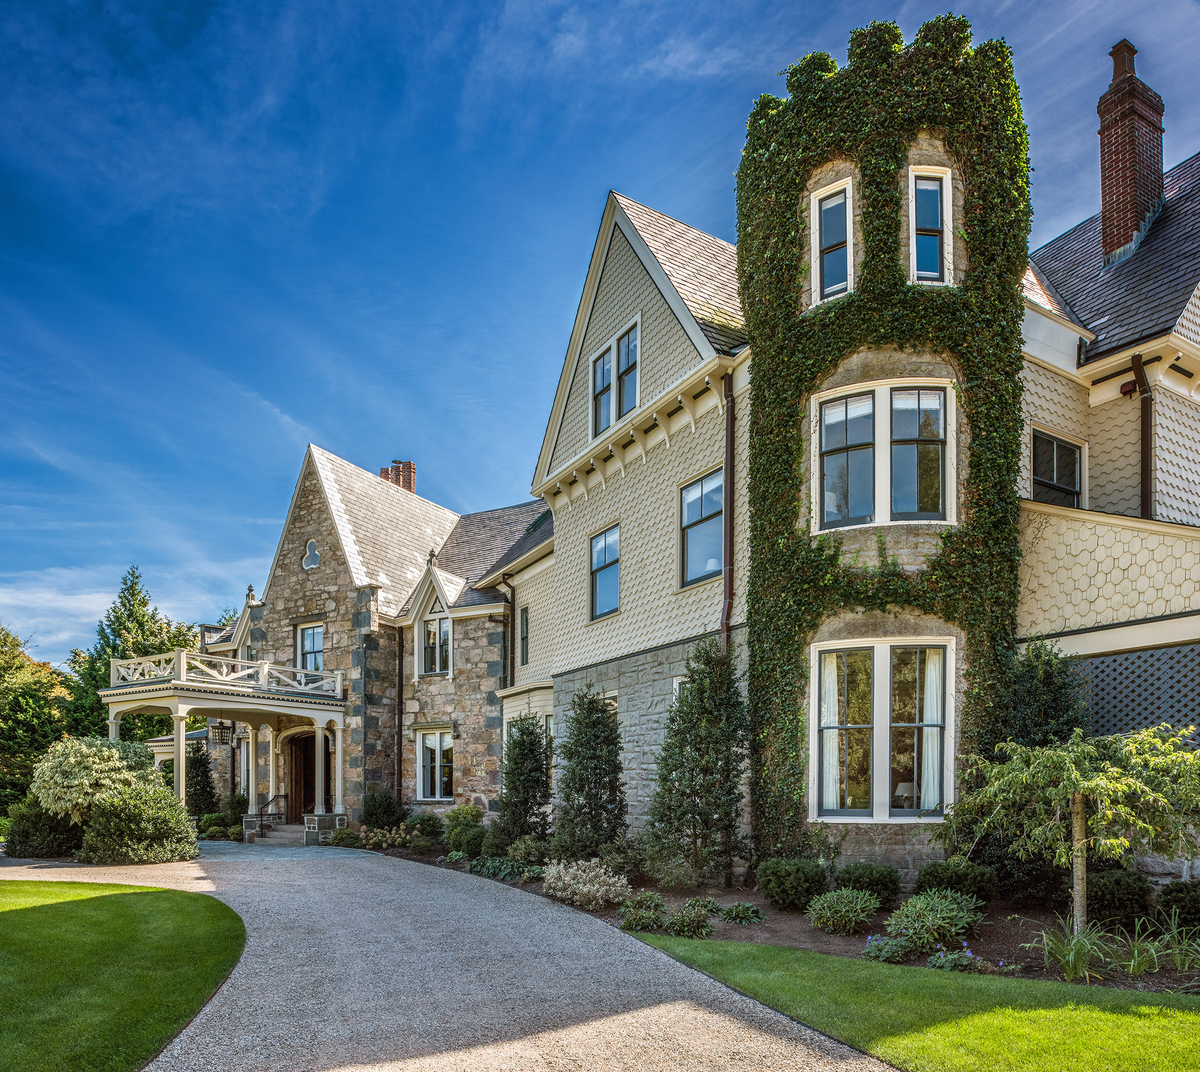 Residential Architectural Photography